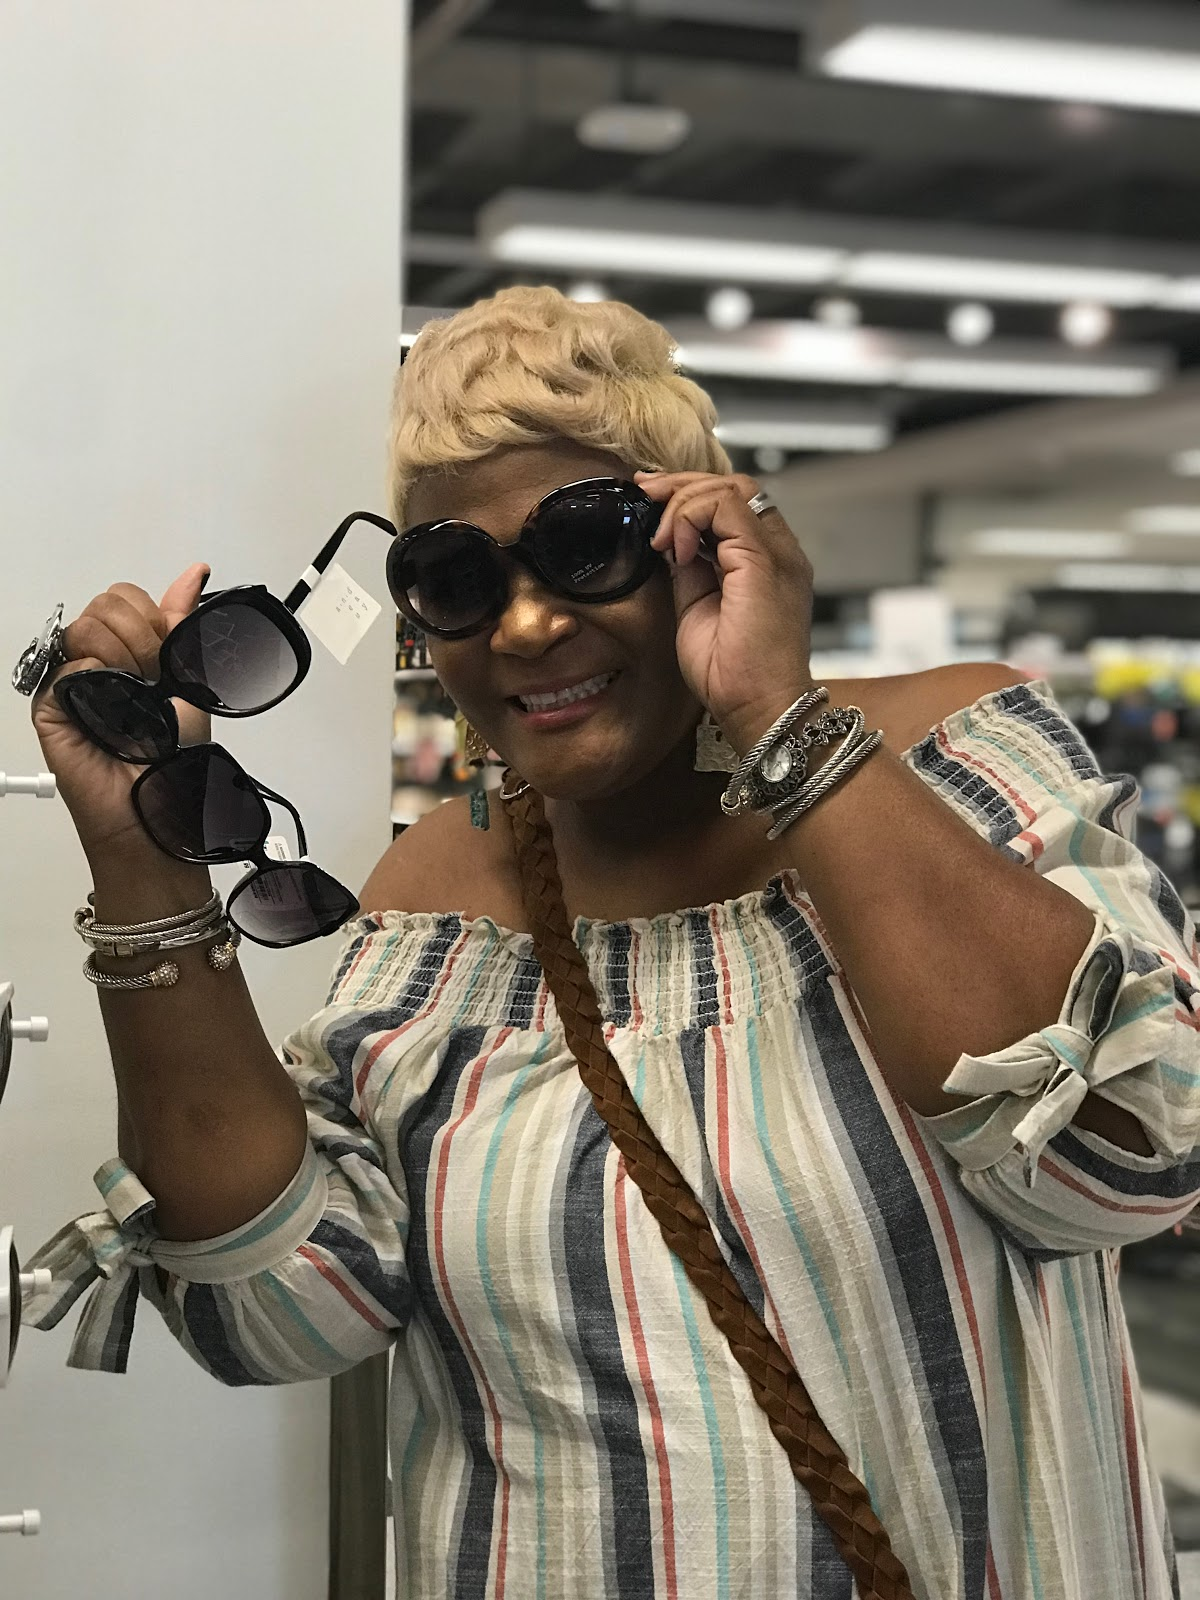 Image: Tangie Bell trying on new shades at Target. seen first on Bits and Babbles Blog. My second stop was at Target, but I had a hard time finding cute dresses that I wanted to rock so I may try my luck at it on another day.